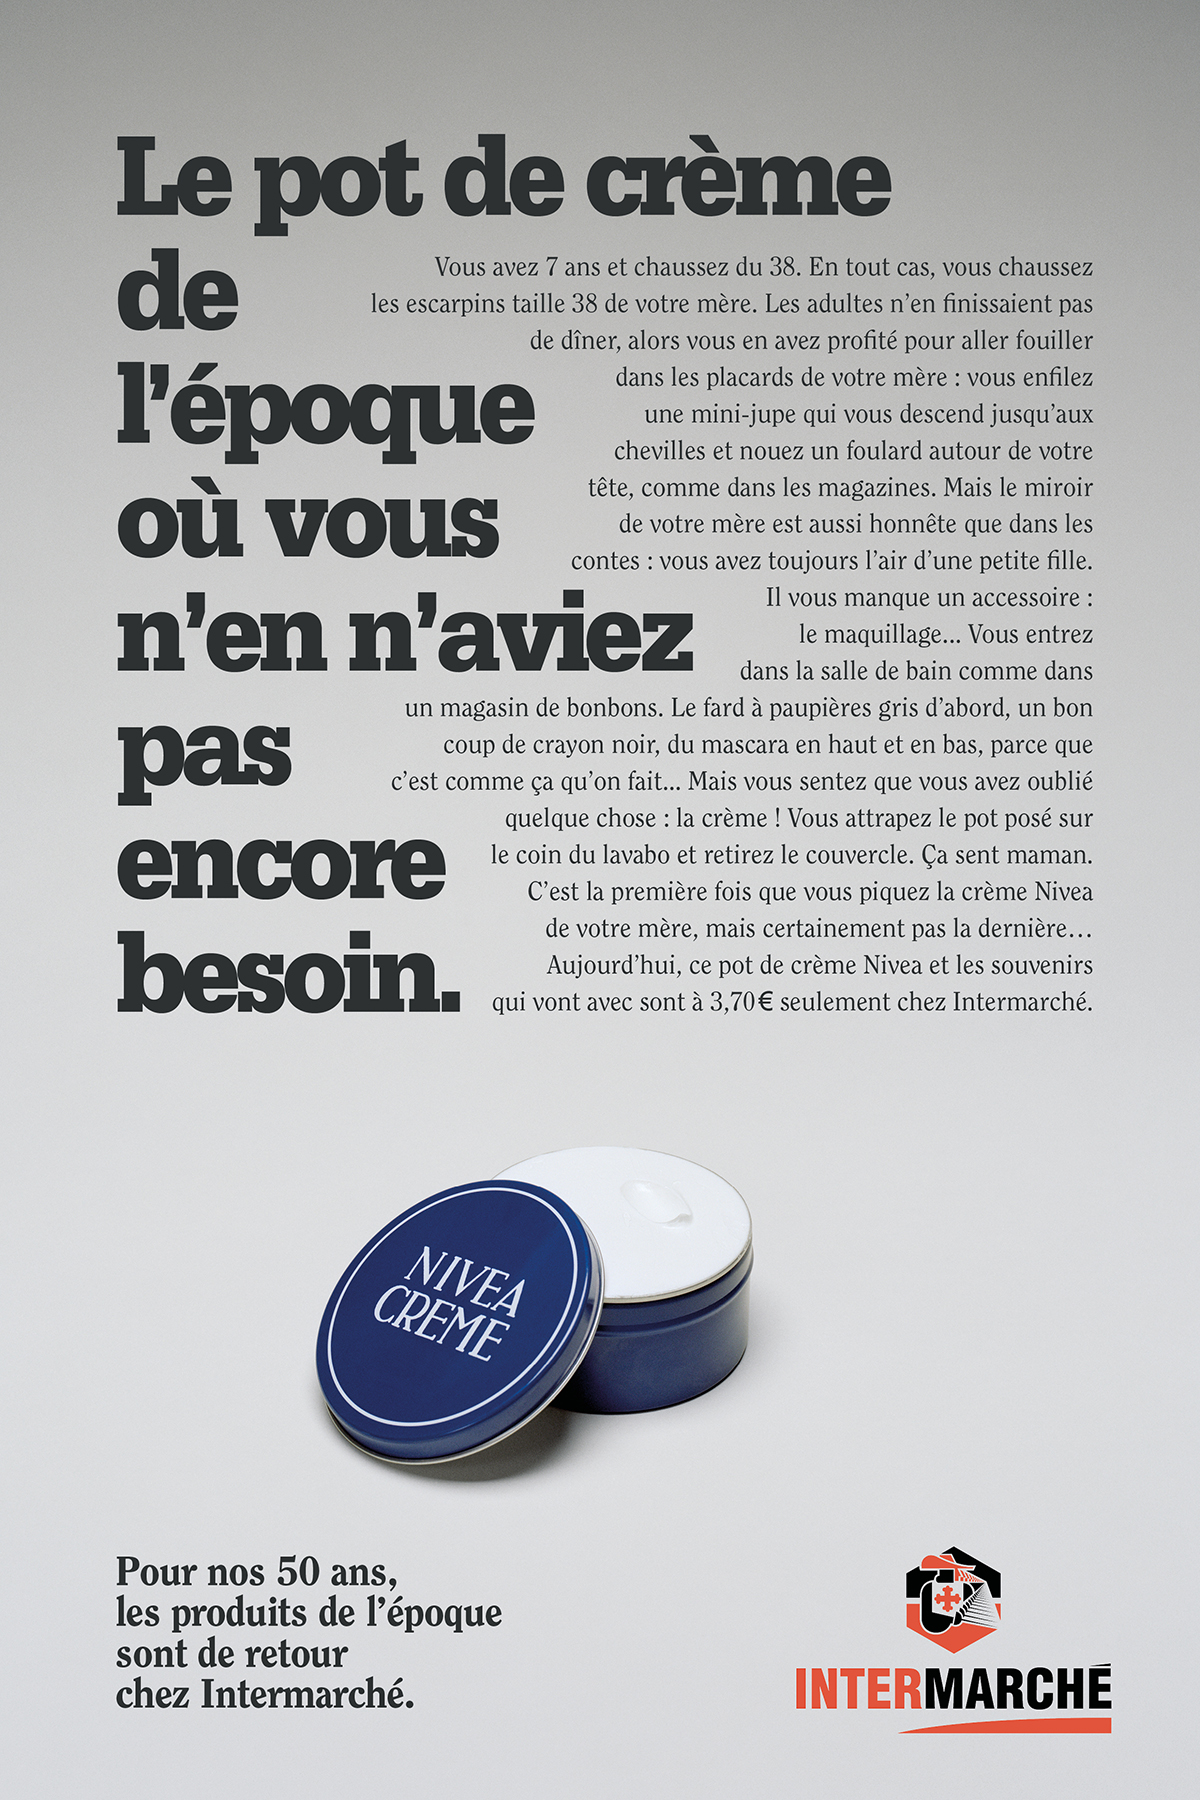 intermarche-50-ans-tf1-evelyne-leclercq-agence-romance-nivea-pot-creme-packaging-1960-1970